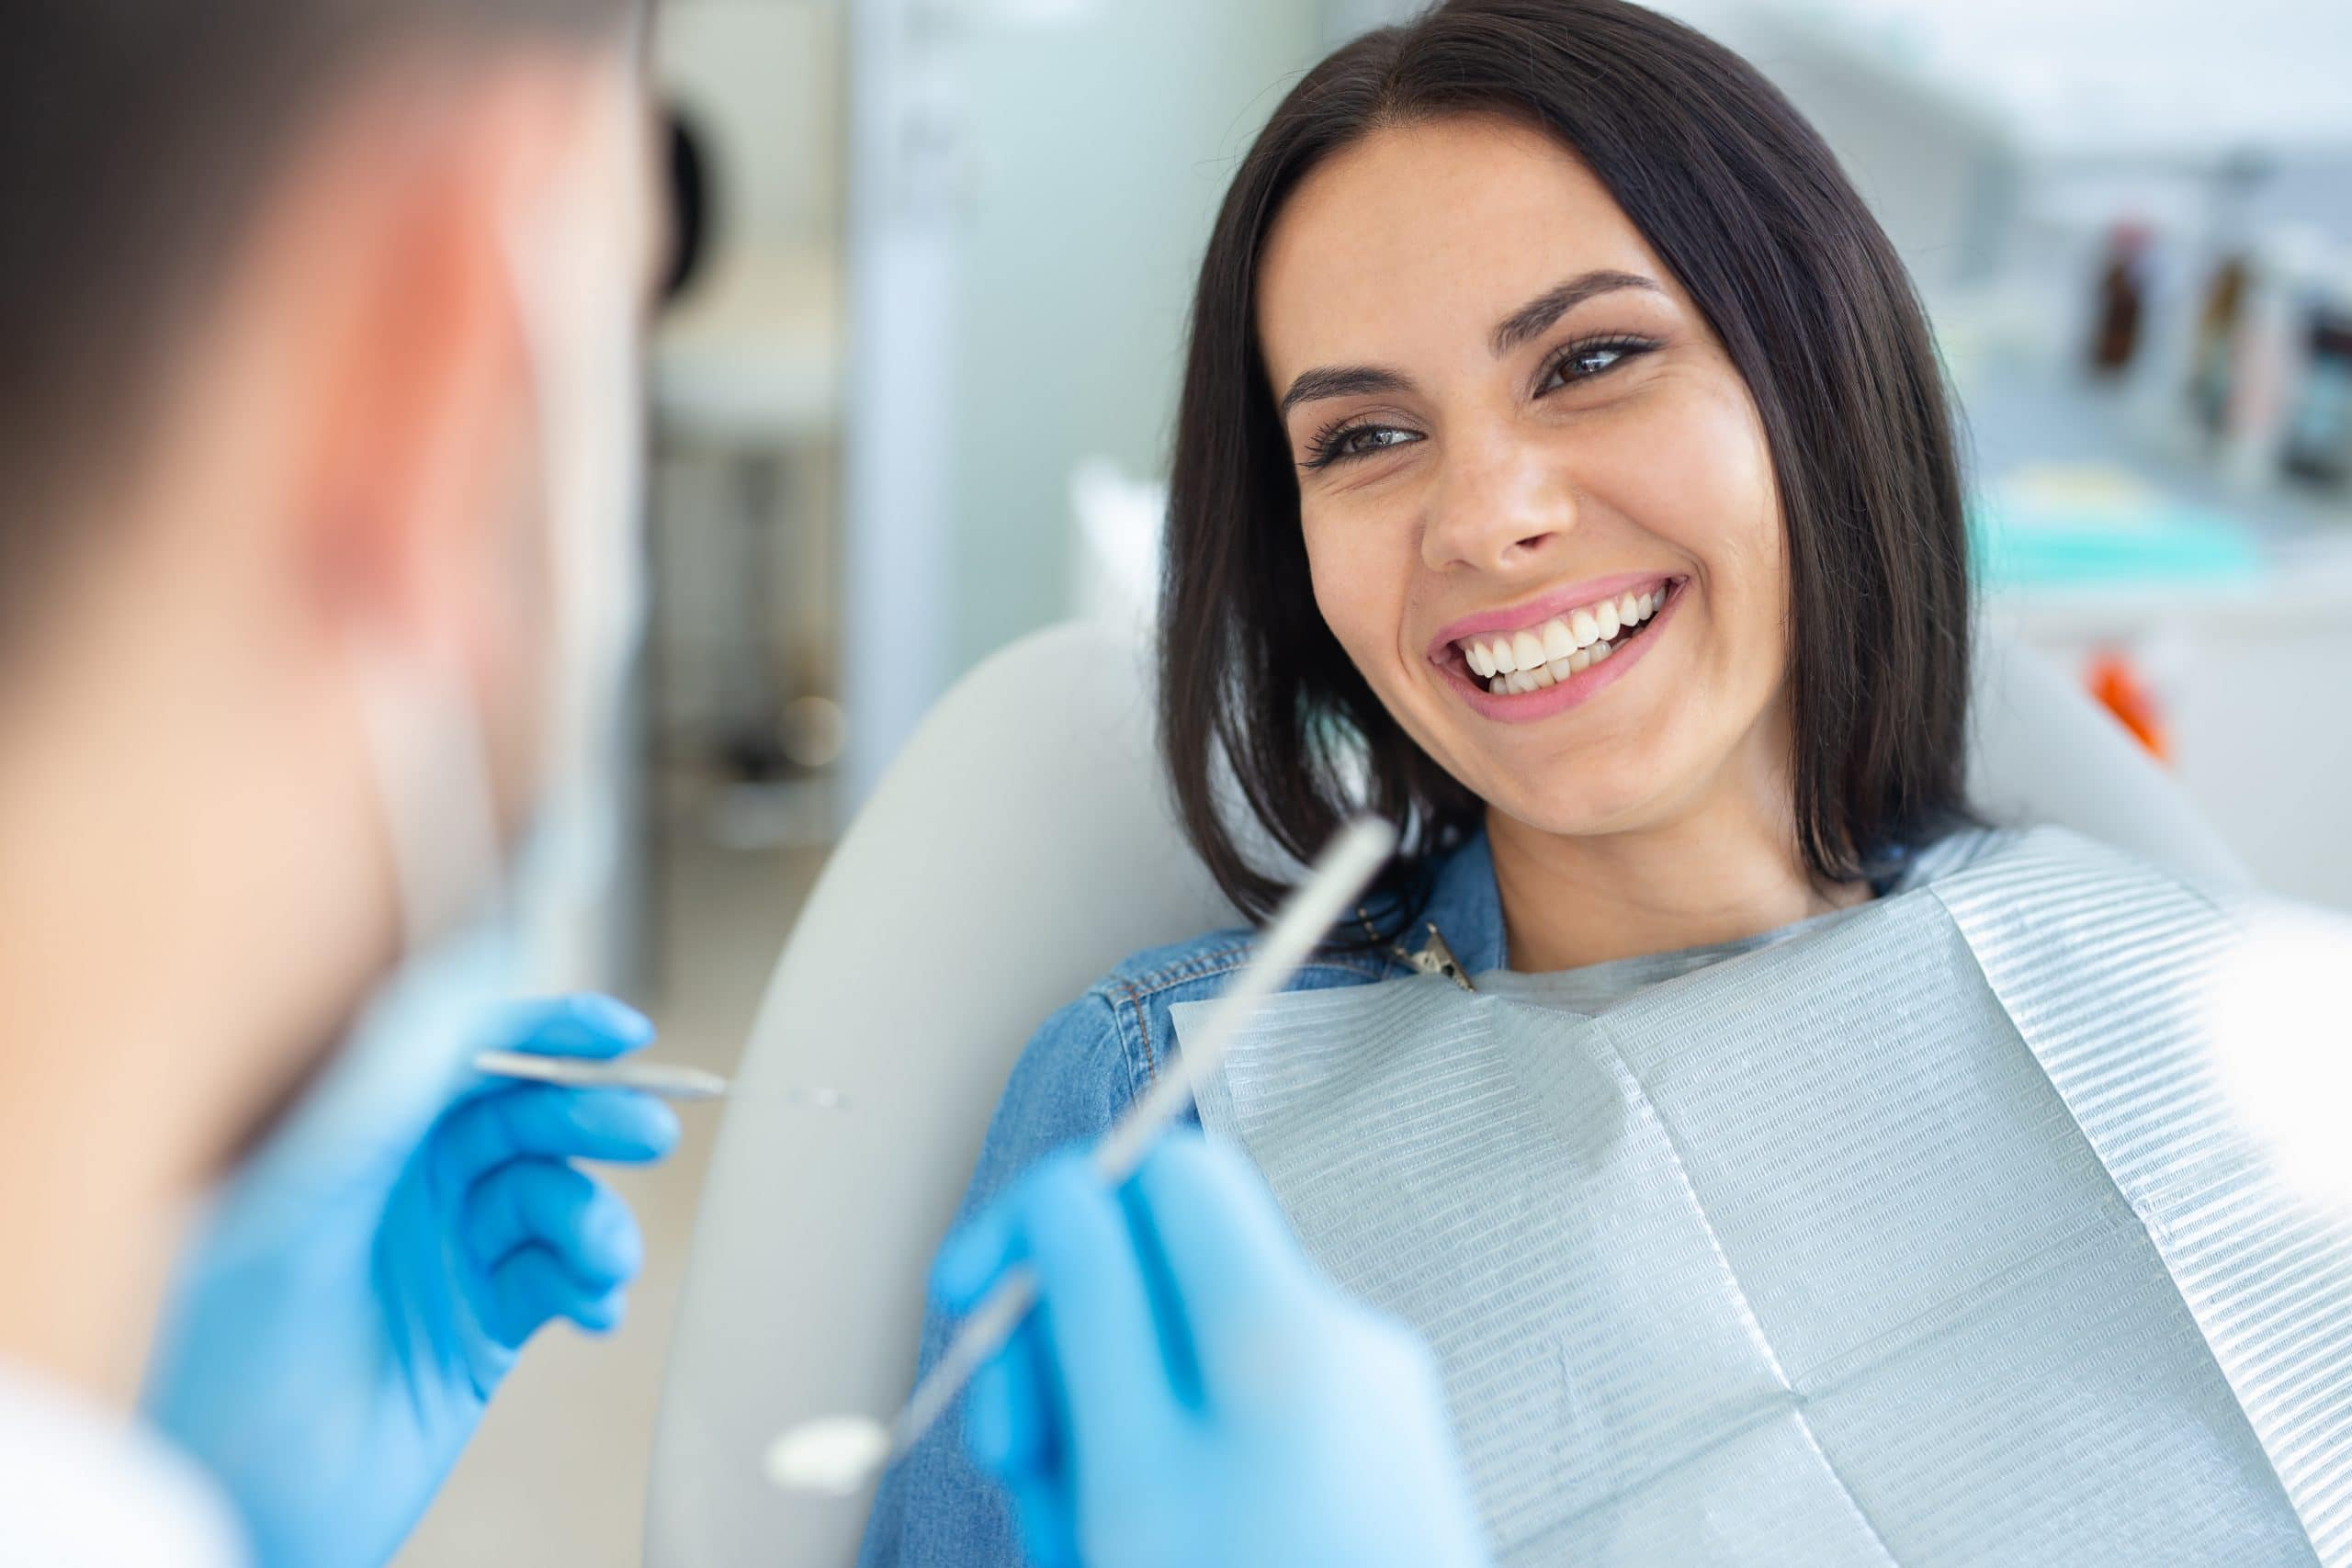 Preventative Dentistry in Winthrop and Waterville